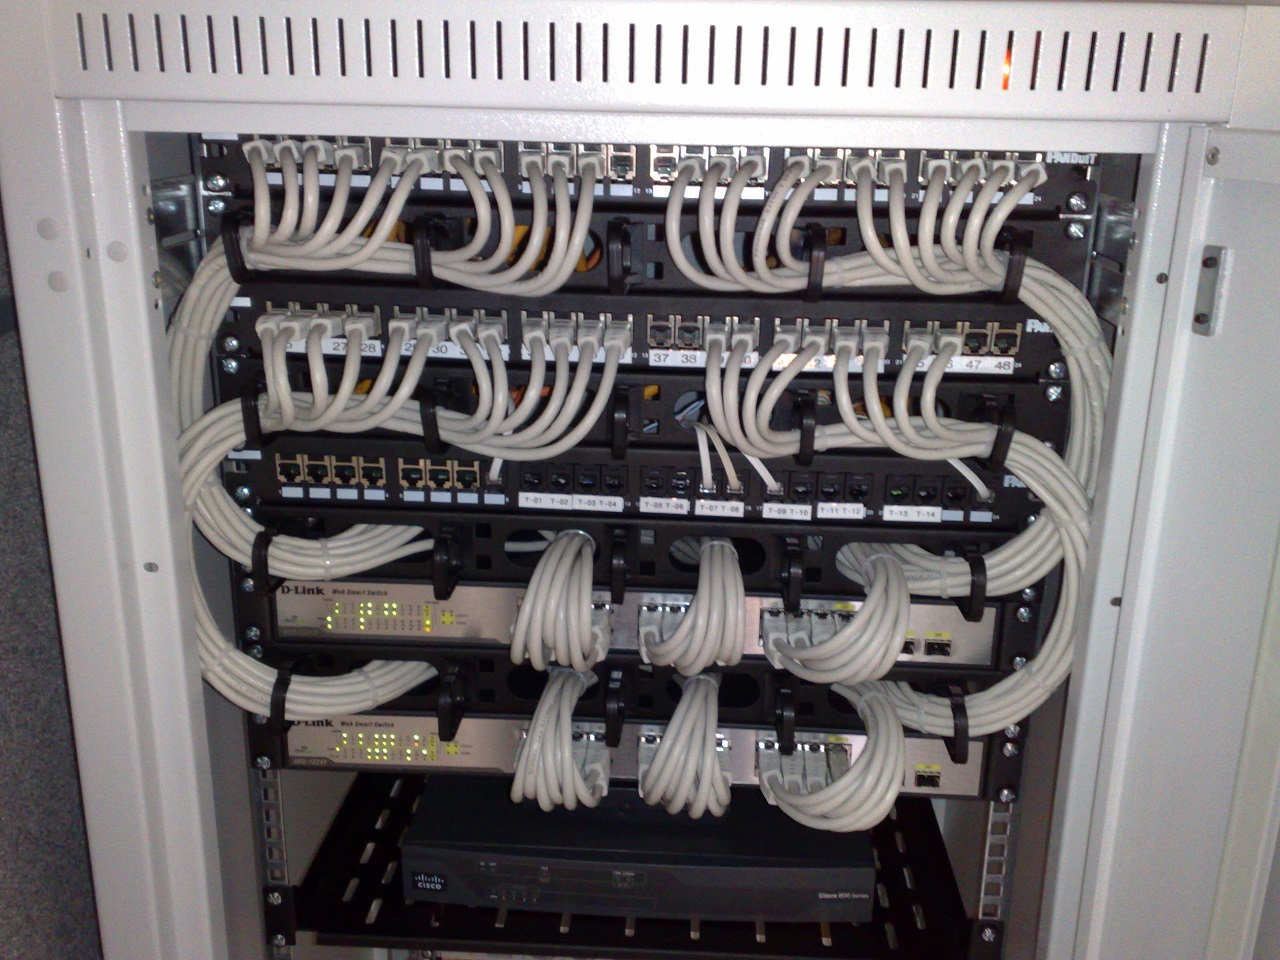 Patch Cable Wikipedia Wiring Diagram Moreover Make Ether Crossover Also Cat 5 A Couple Of Managed Gigabit Ethernet Rackmount Switches Connected To The Ports On Few Panels Using Category 6 Cables All Equipment